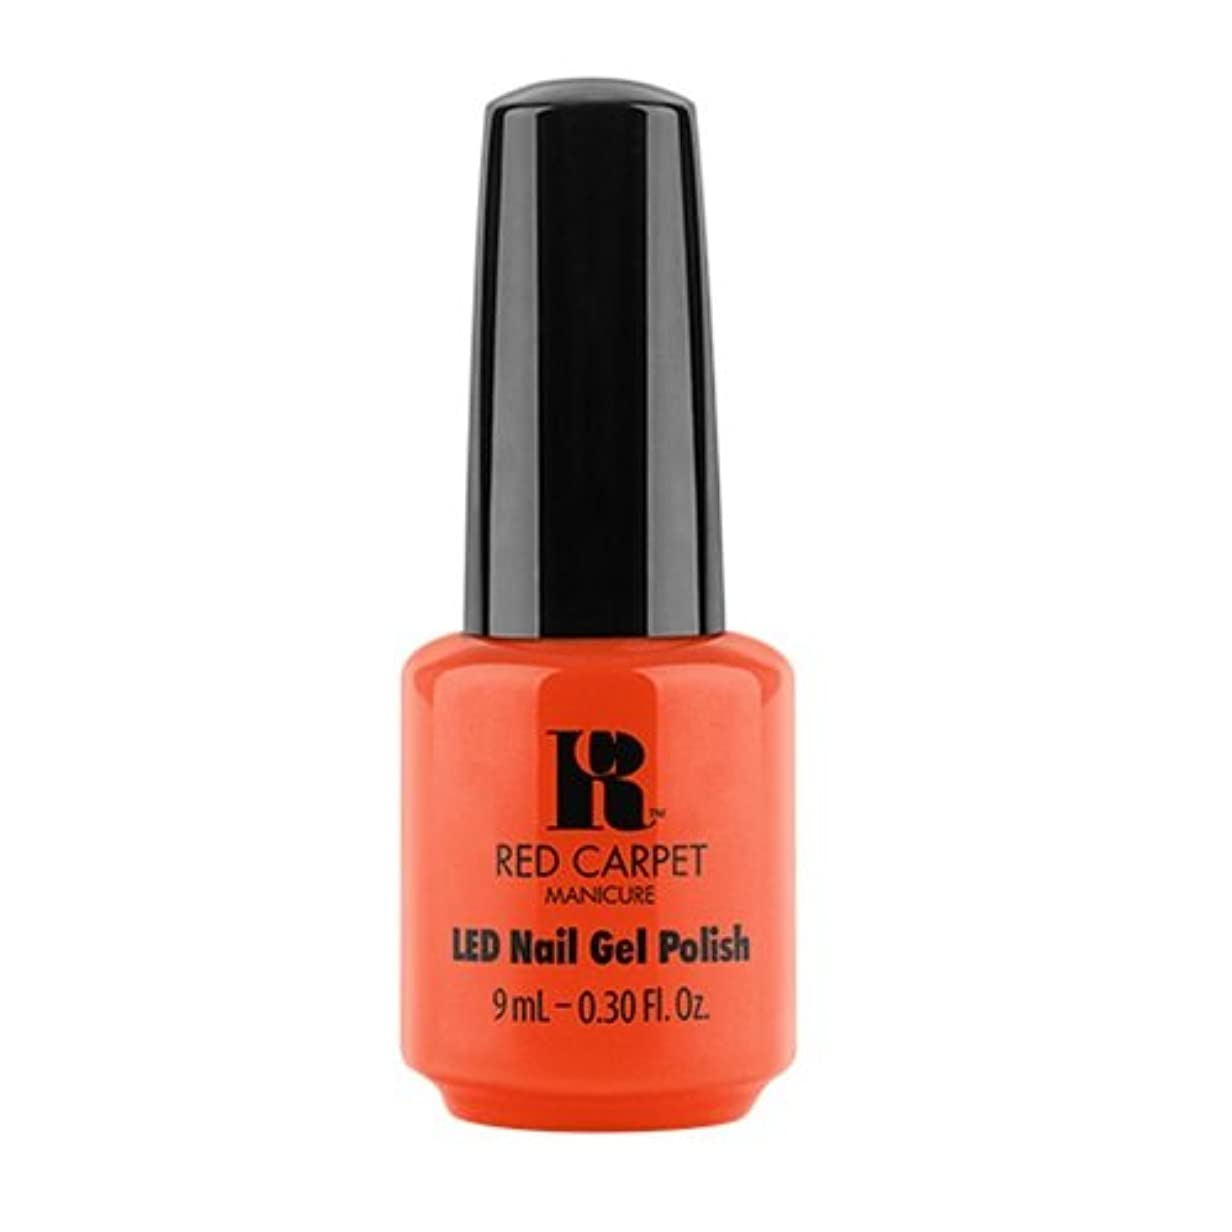 Red Carpet Manicure - LED Nail Gel Polish - Summer 2017 Fiji Fever - Neon Nights - 0.3oz / 9ml